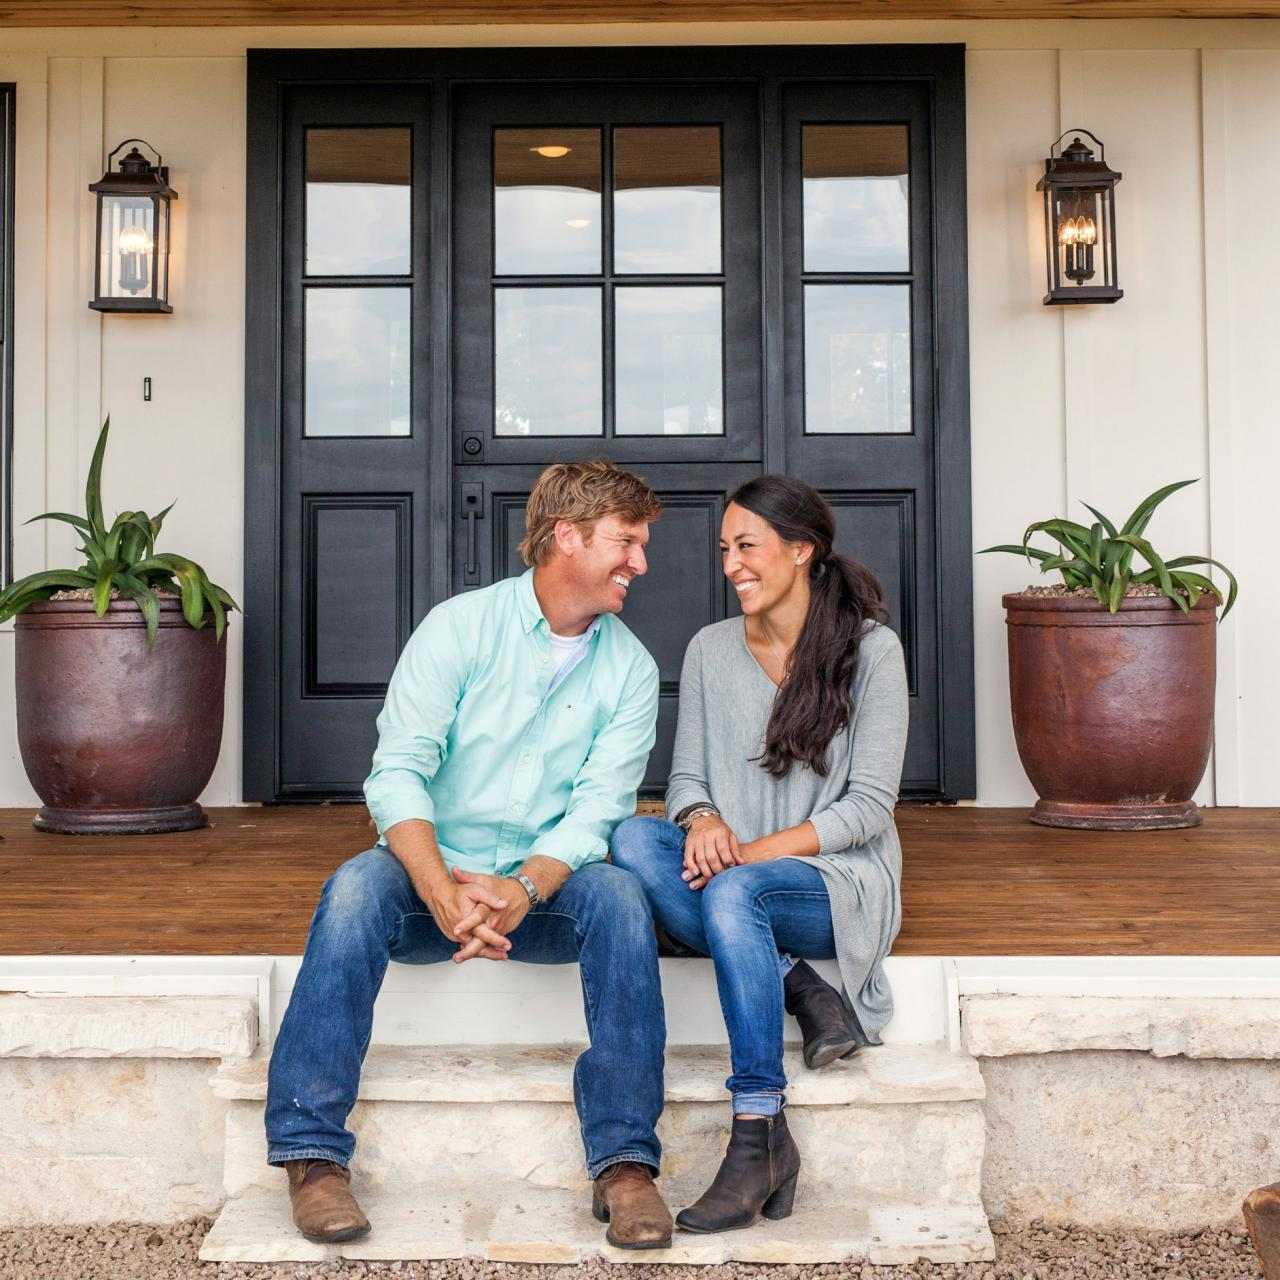 Chip and Joanna Gaines, hosts of HGTV's Fixer Upper photo via HGTV